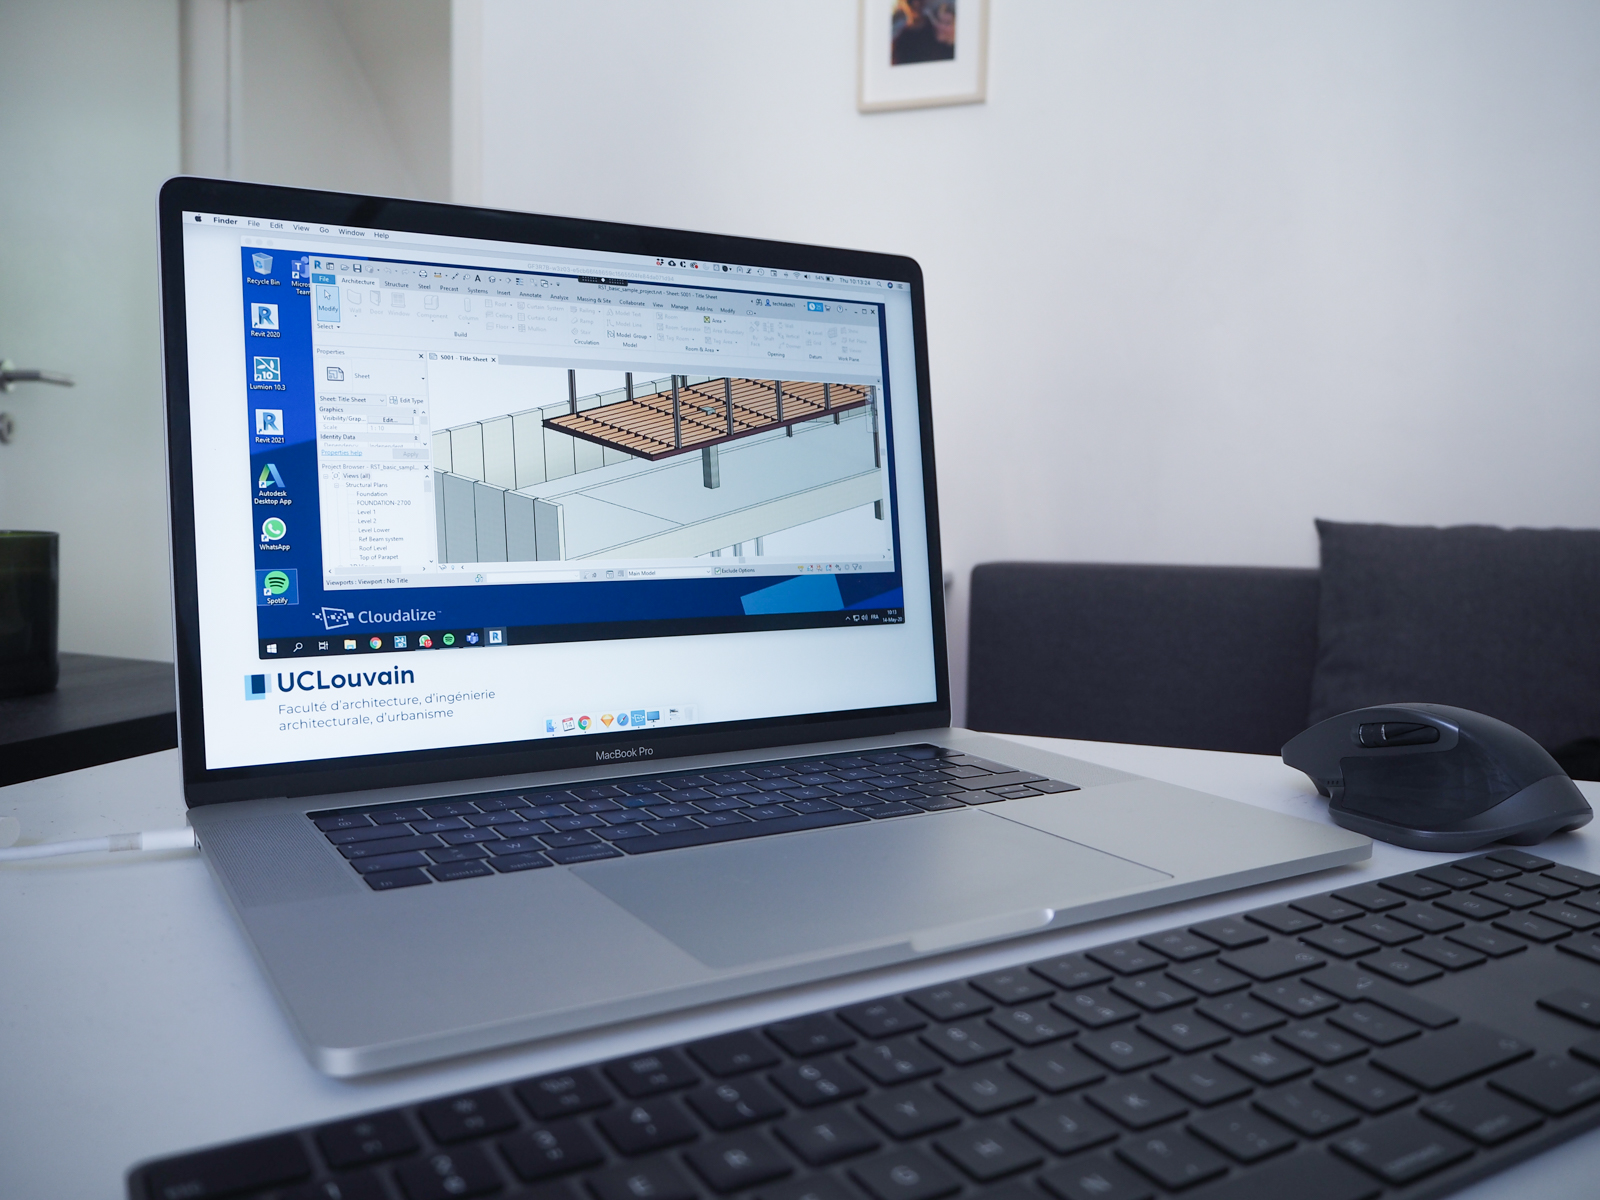 Cloudalize_cloud_workstation_customer_cloud_classroom_cloud_workstation_desktop-as-a-service_daas_cloud_UCLouvain_LOCI_architecture_remote_learning_cad_bim_graphical_performance